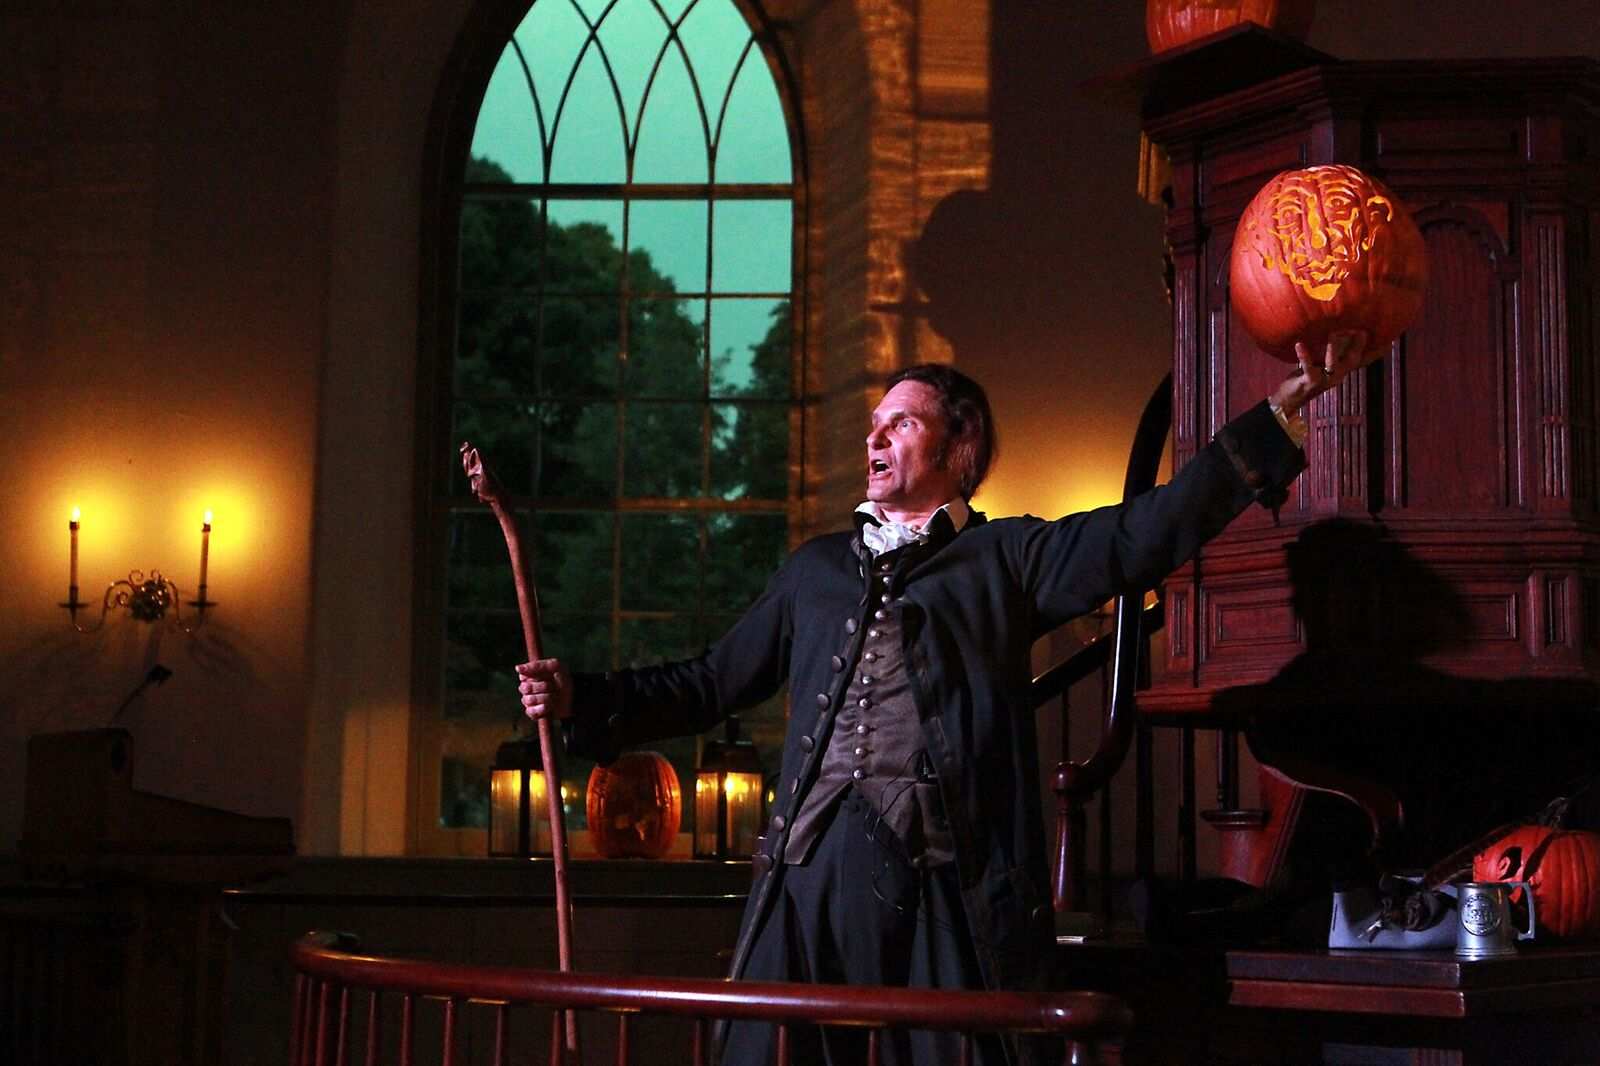 Historic Hudson Valley Kicks Off Their Halloween Events